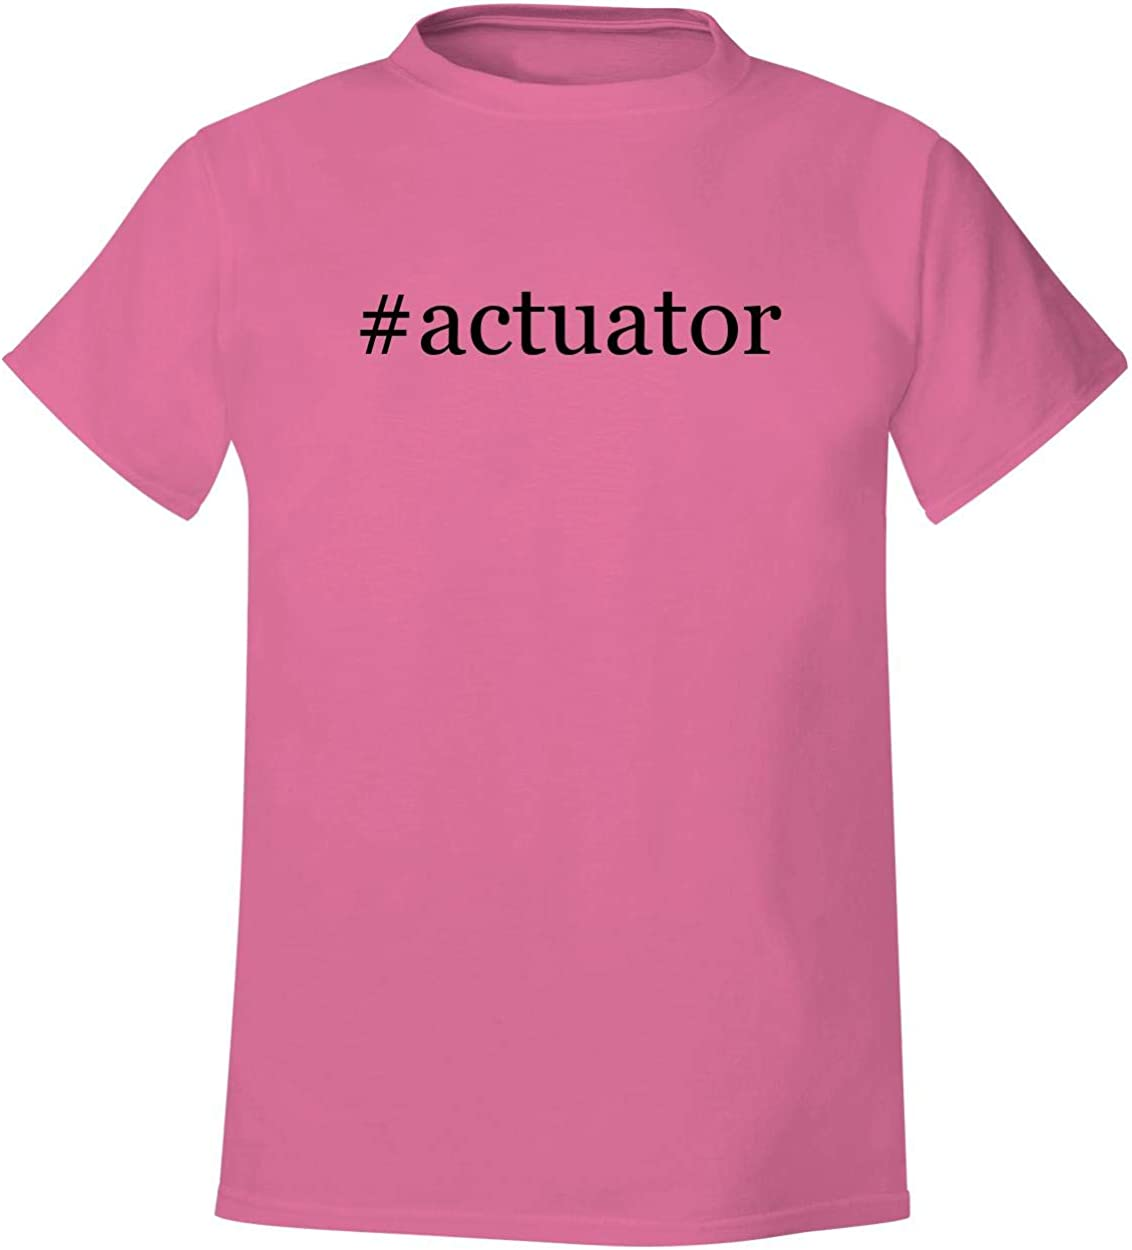 #actuator - Men's Hashtag Soft & Comfortable T-Shirt 51K7XrhwaVL